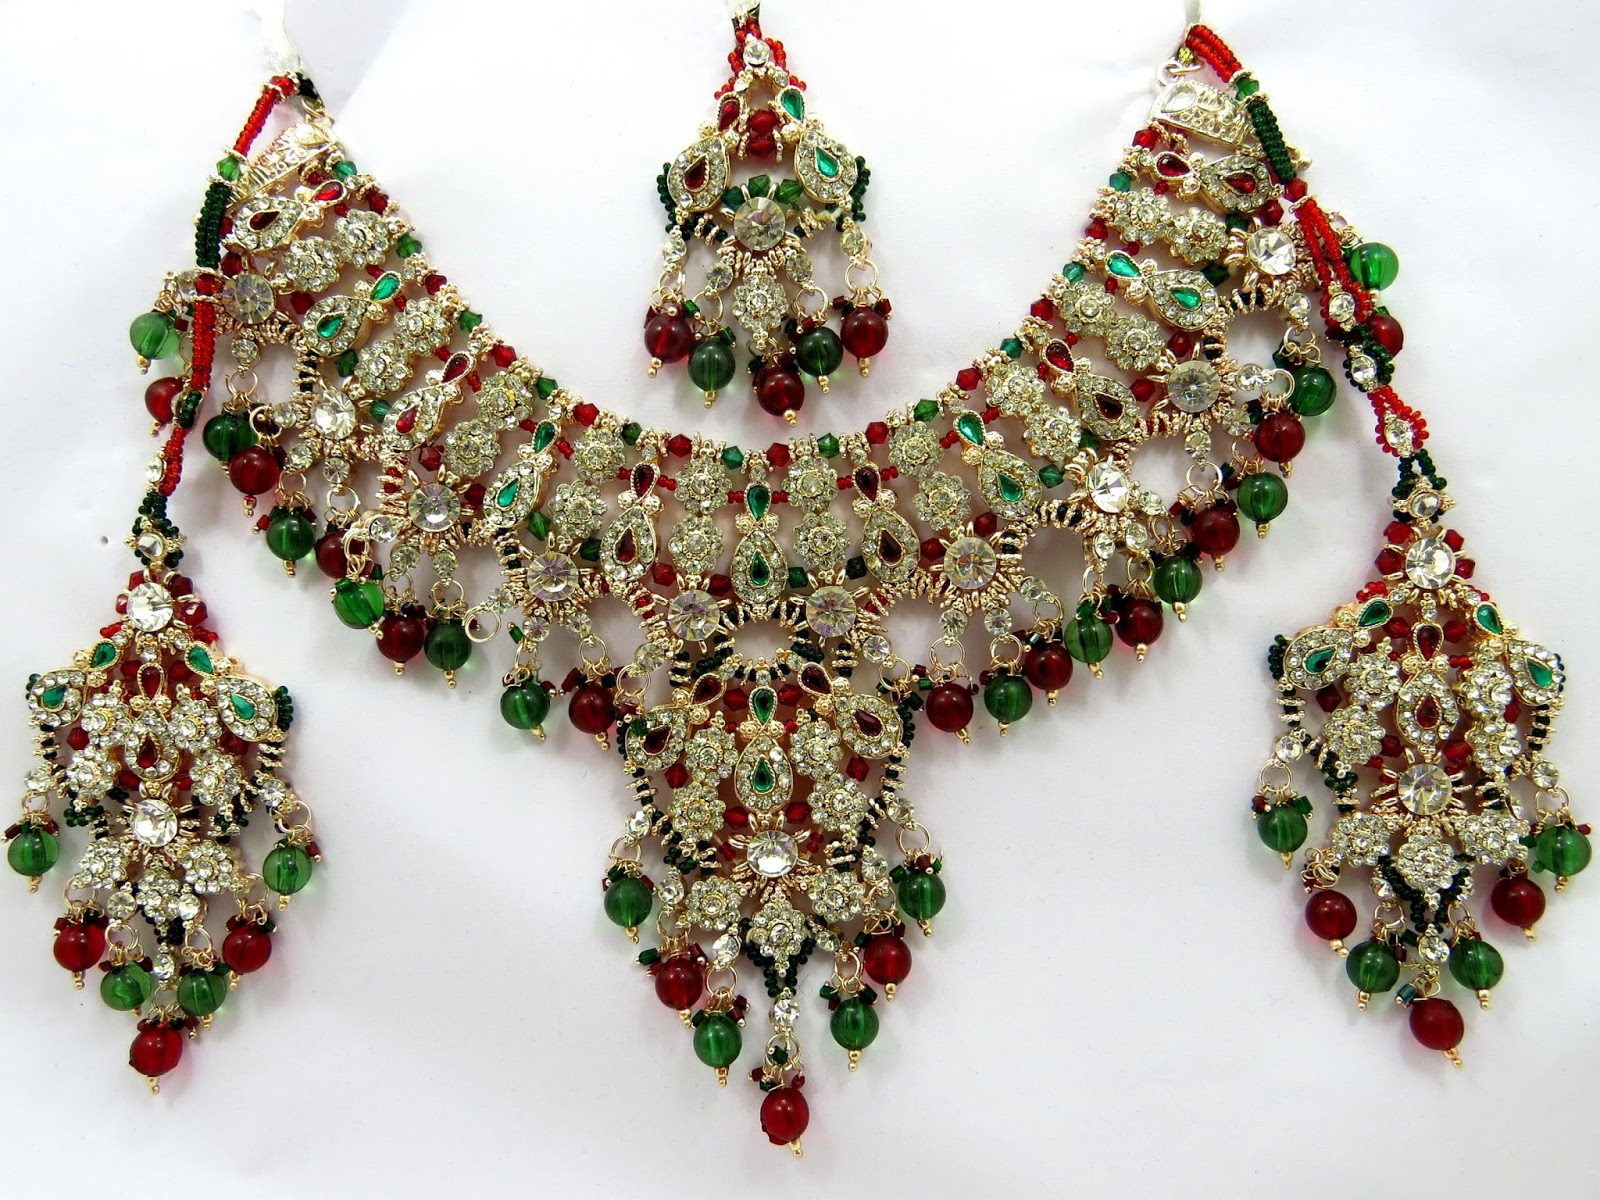 Indian Bridal Jewelry Export: Indian Bridal Jewelry Export 2